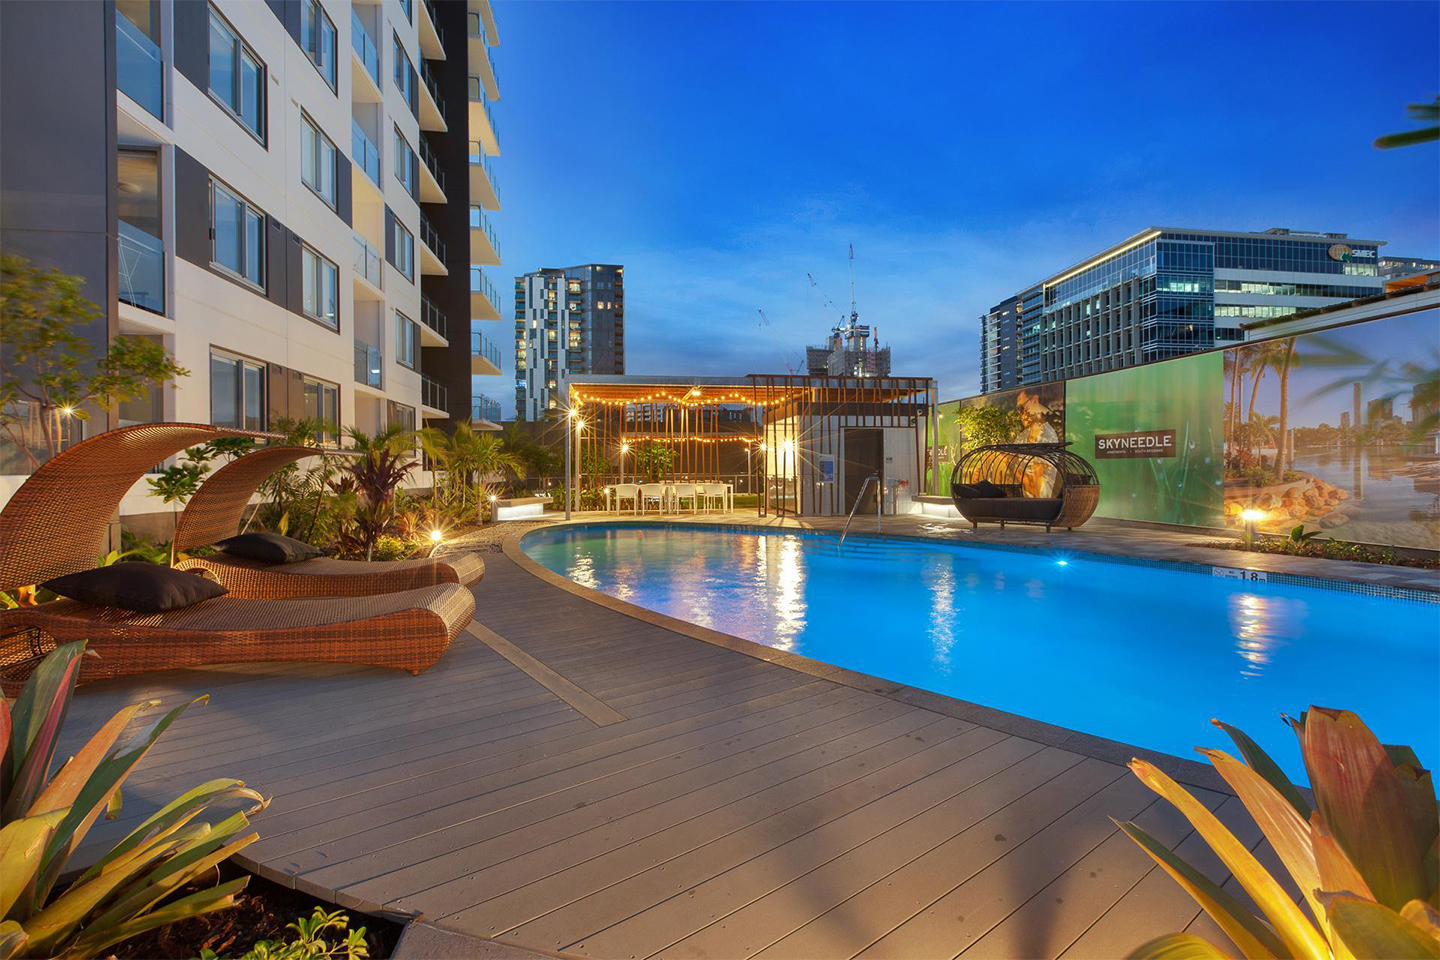 Skyneedle Apartments Project by TLCC